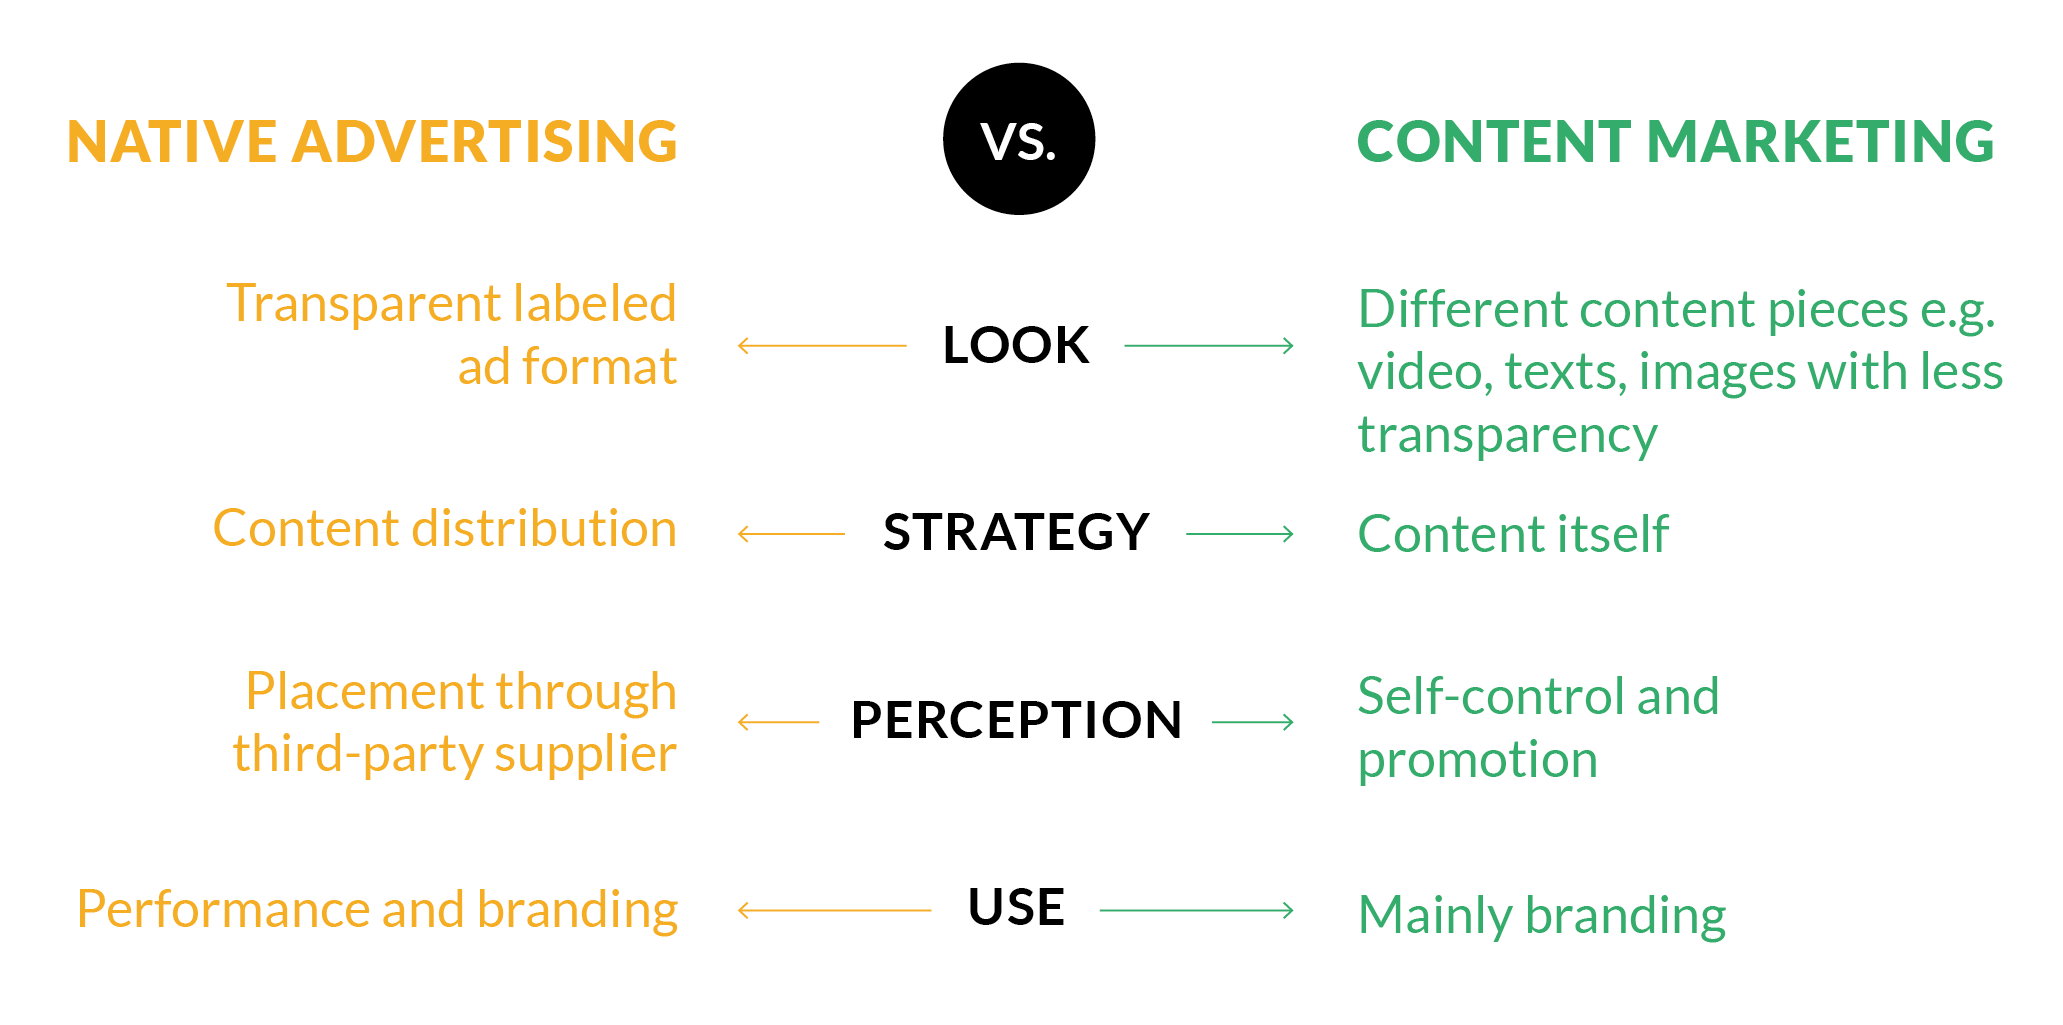 Native Advertising & Content Marketing - the Differences